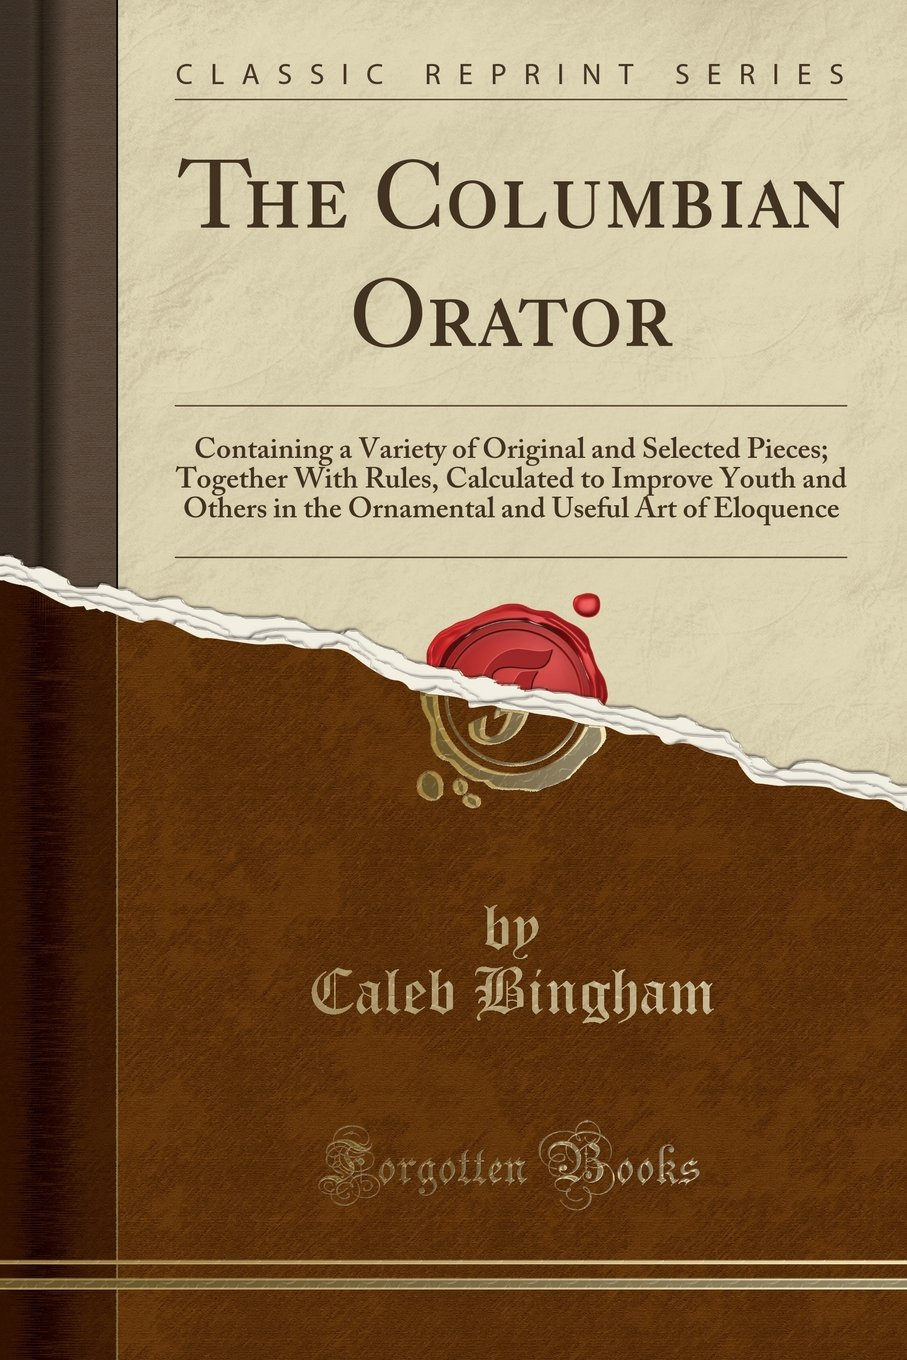 Download The Columbian Orator: Containing a Variety of Original and Selected Pieces; Together With Rules, Calculated to Improve Youth and Others in the Ornamental and Useful Art of Eloquence (Classic Reprint) pdf